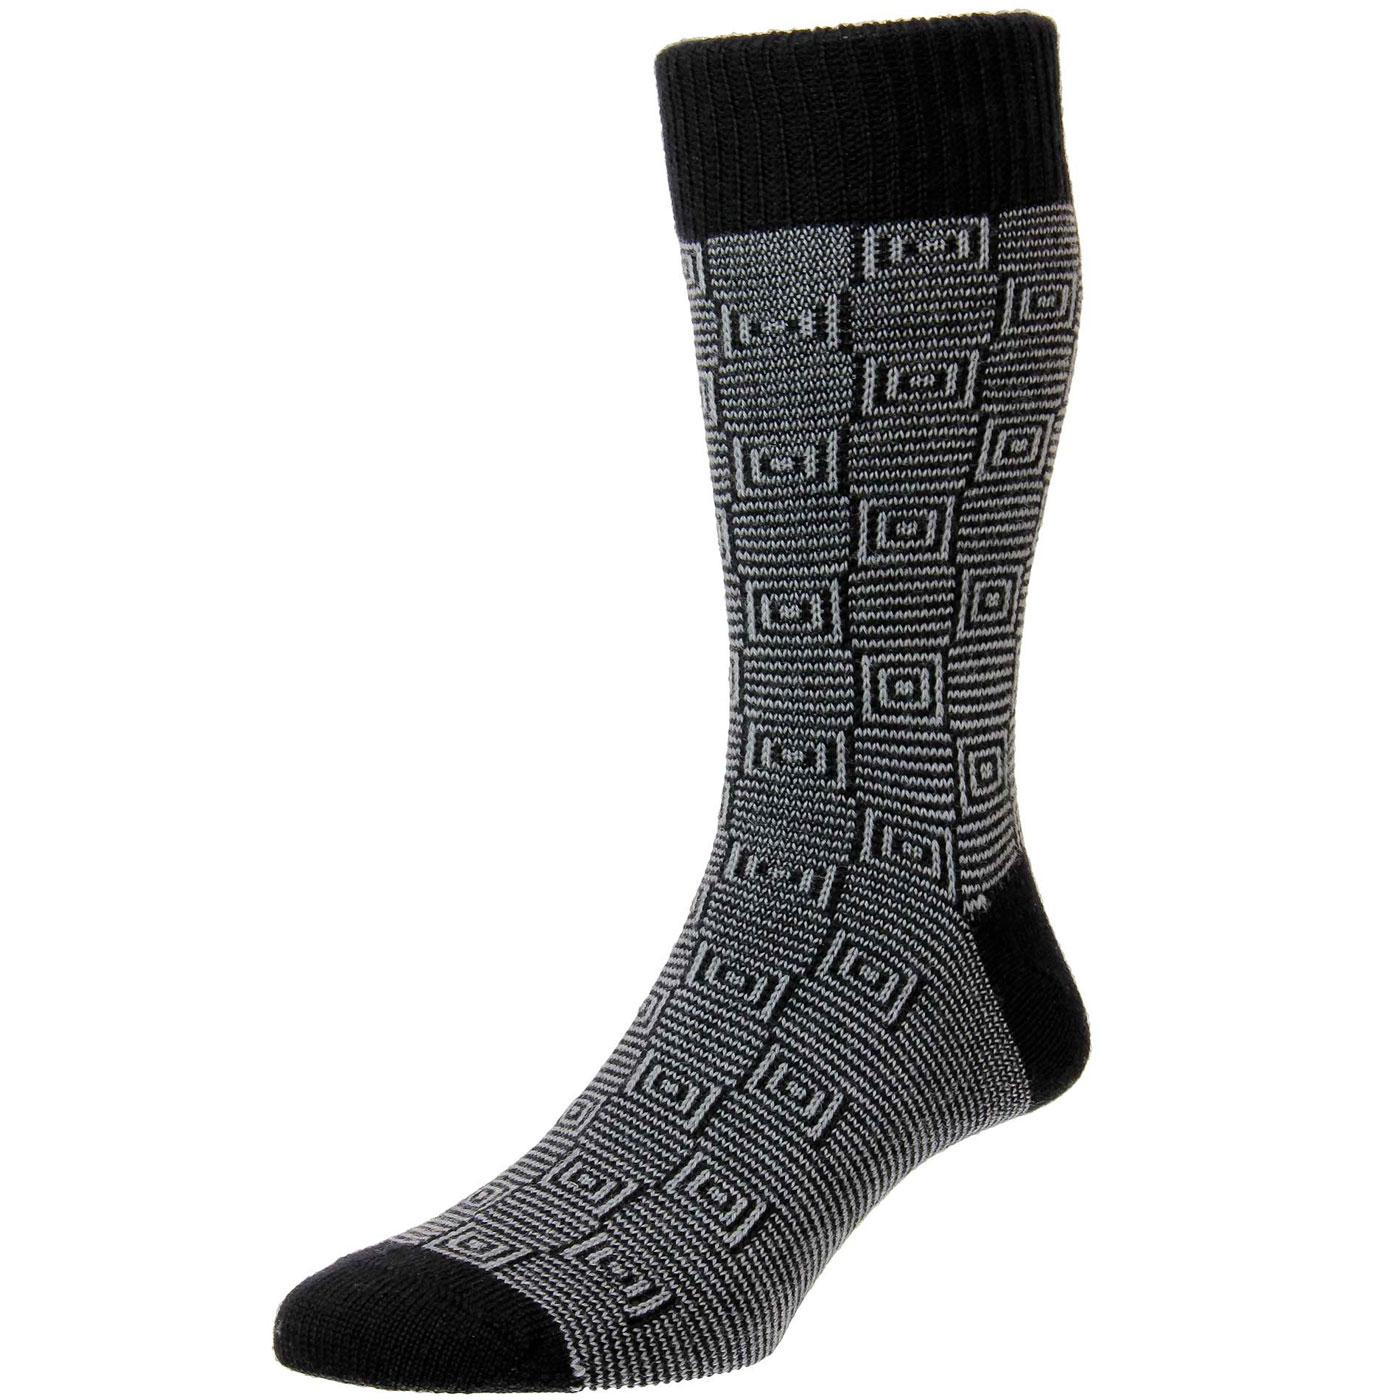 + Ray PANTHERELLA Mod Spiral Square Socks (B/S)